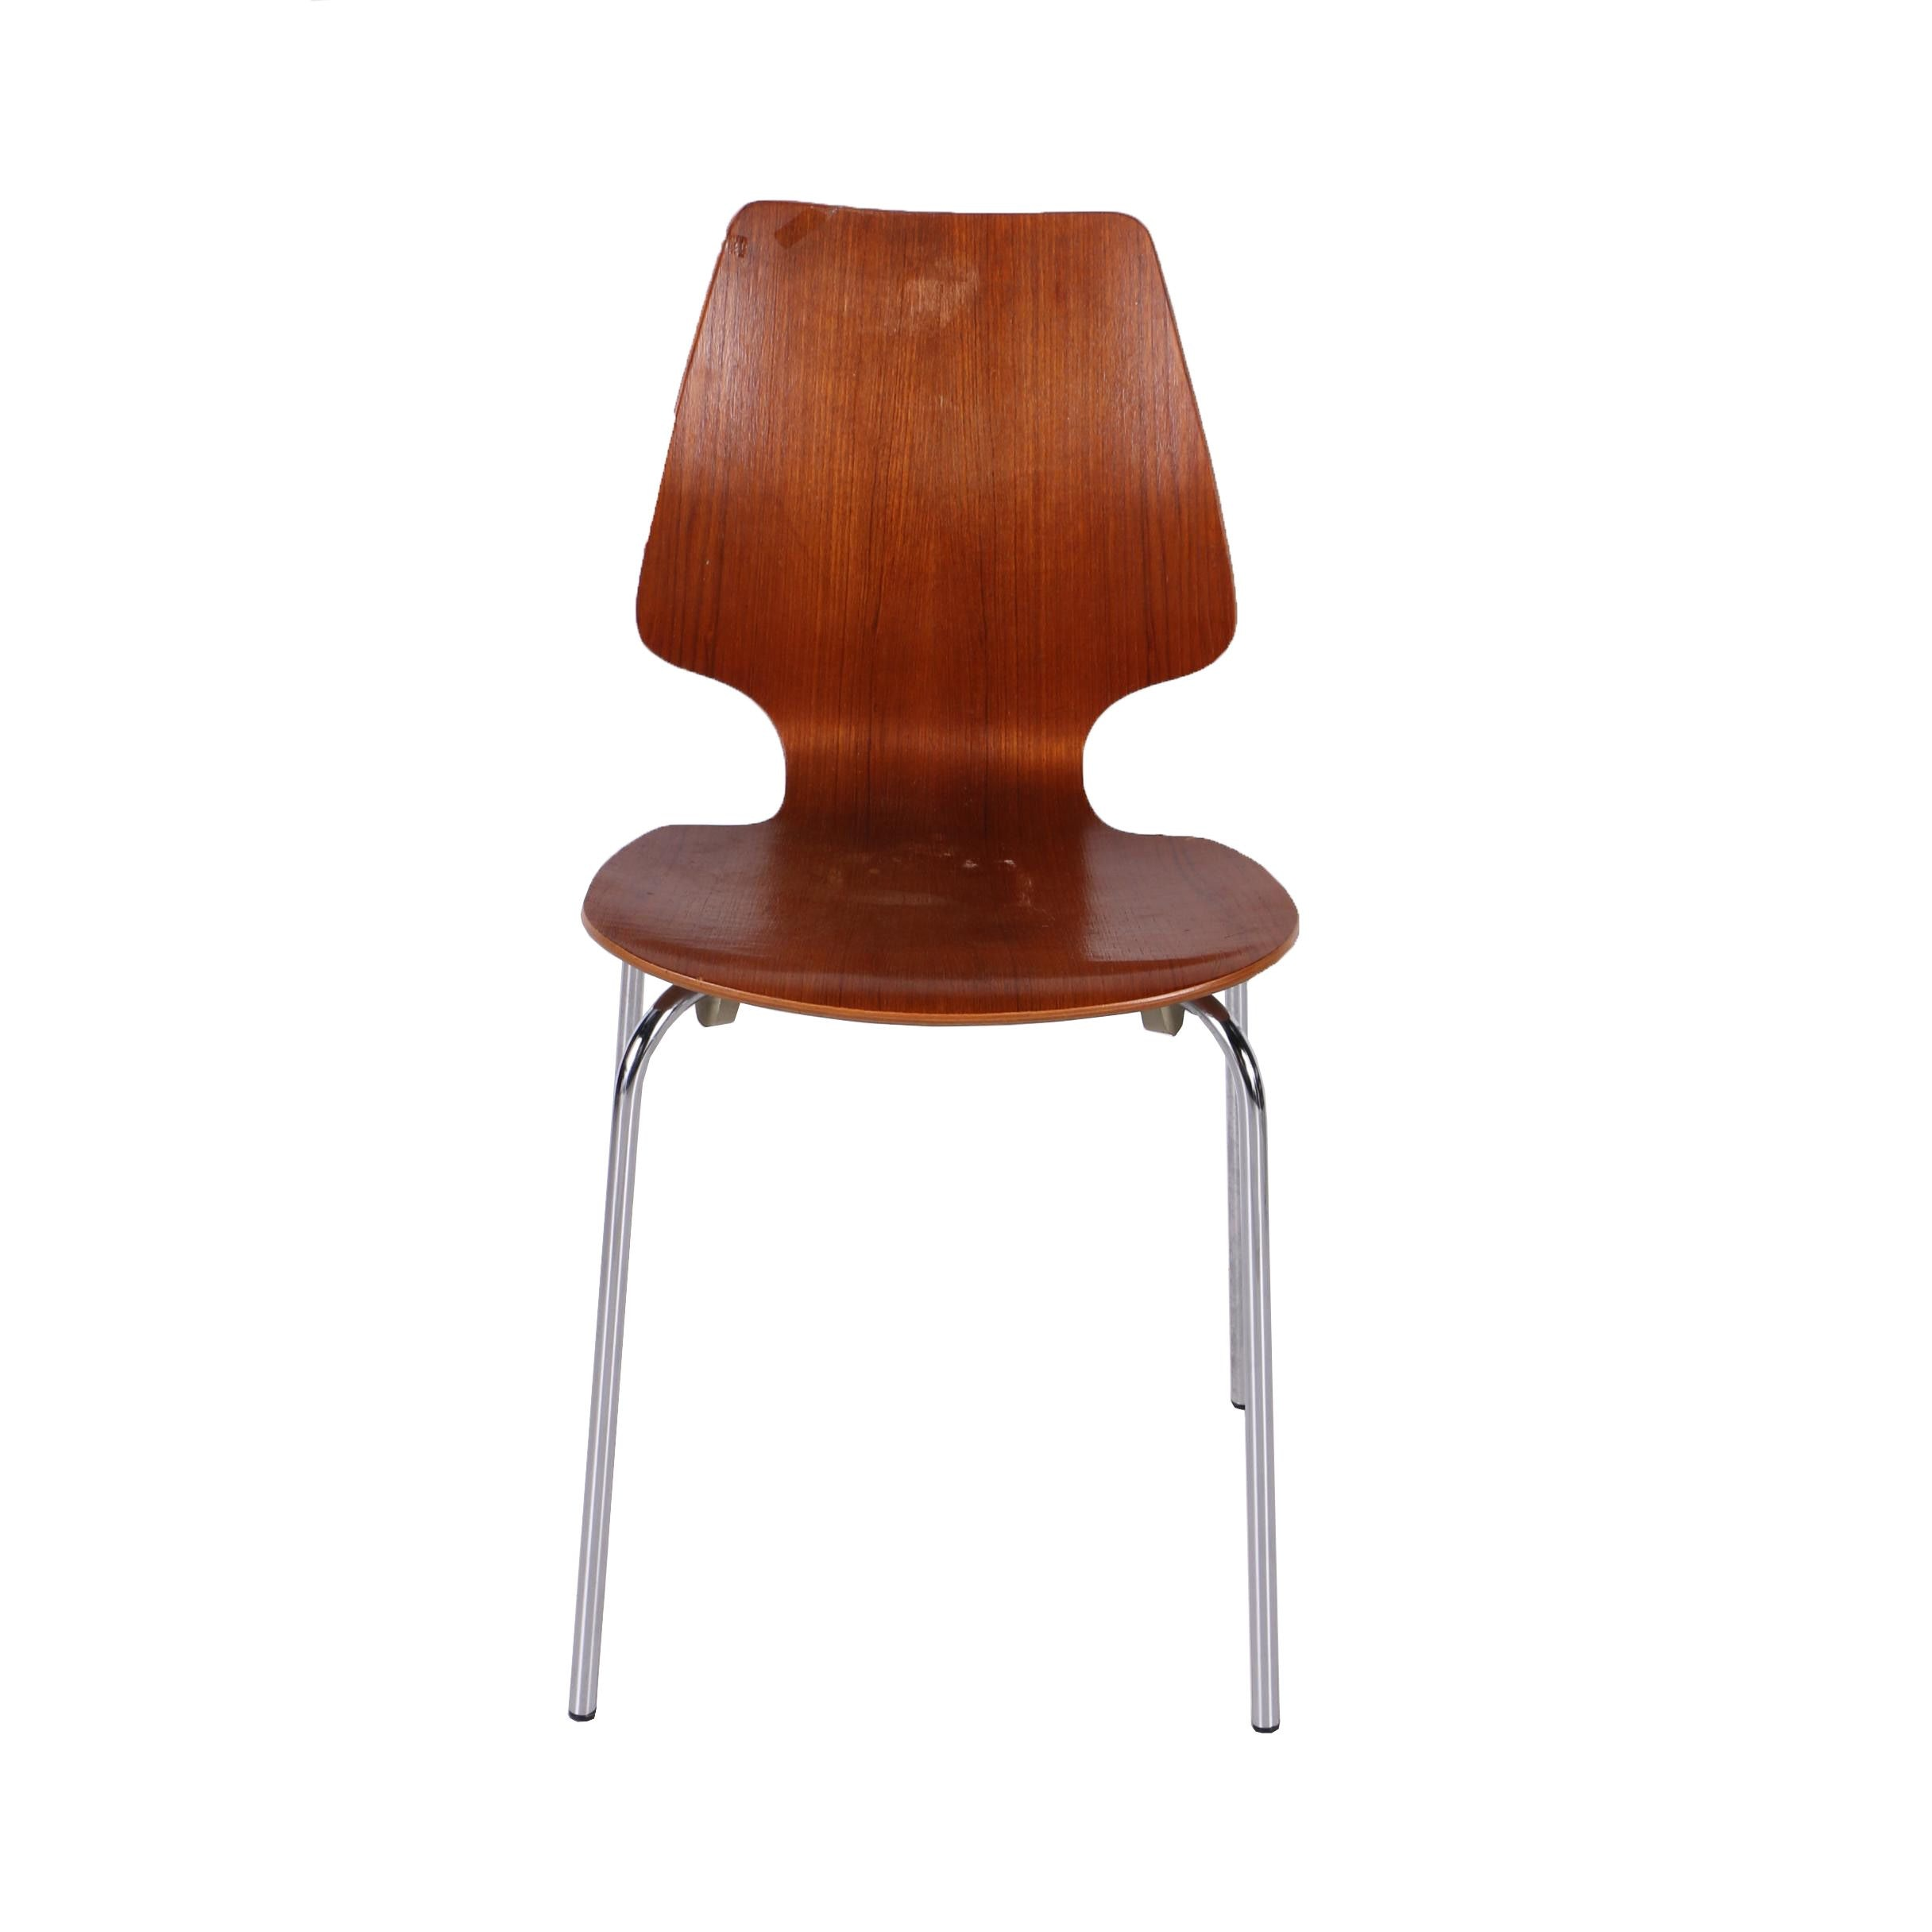 Danish Modern Teak Bentwood Chair